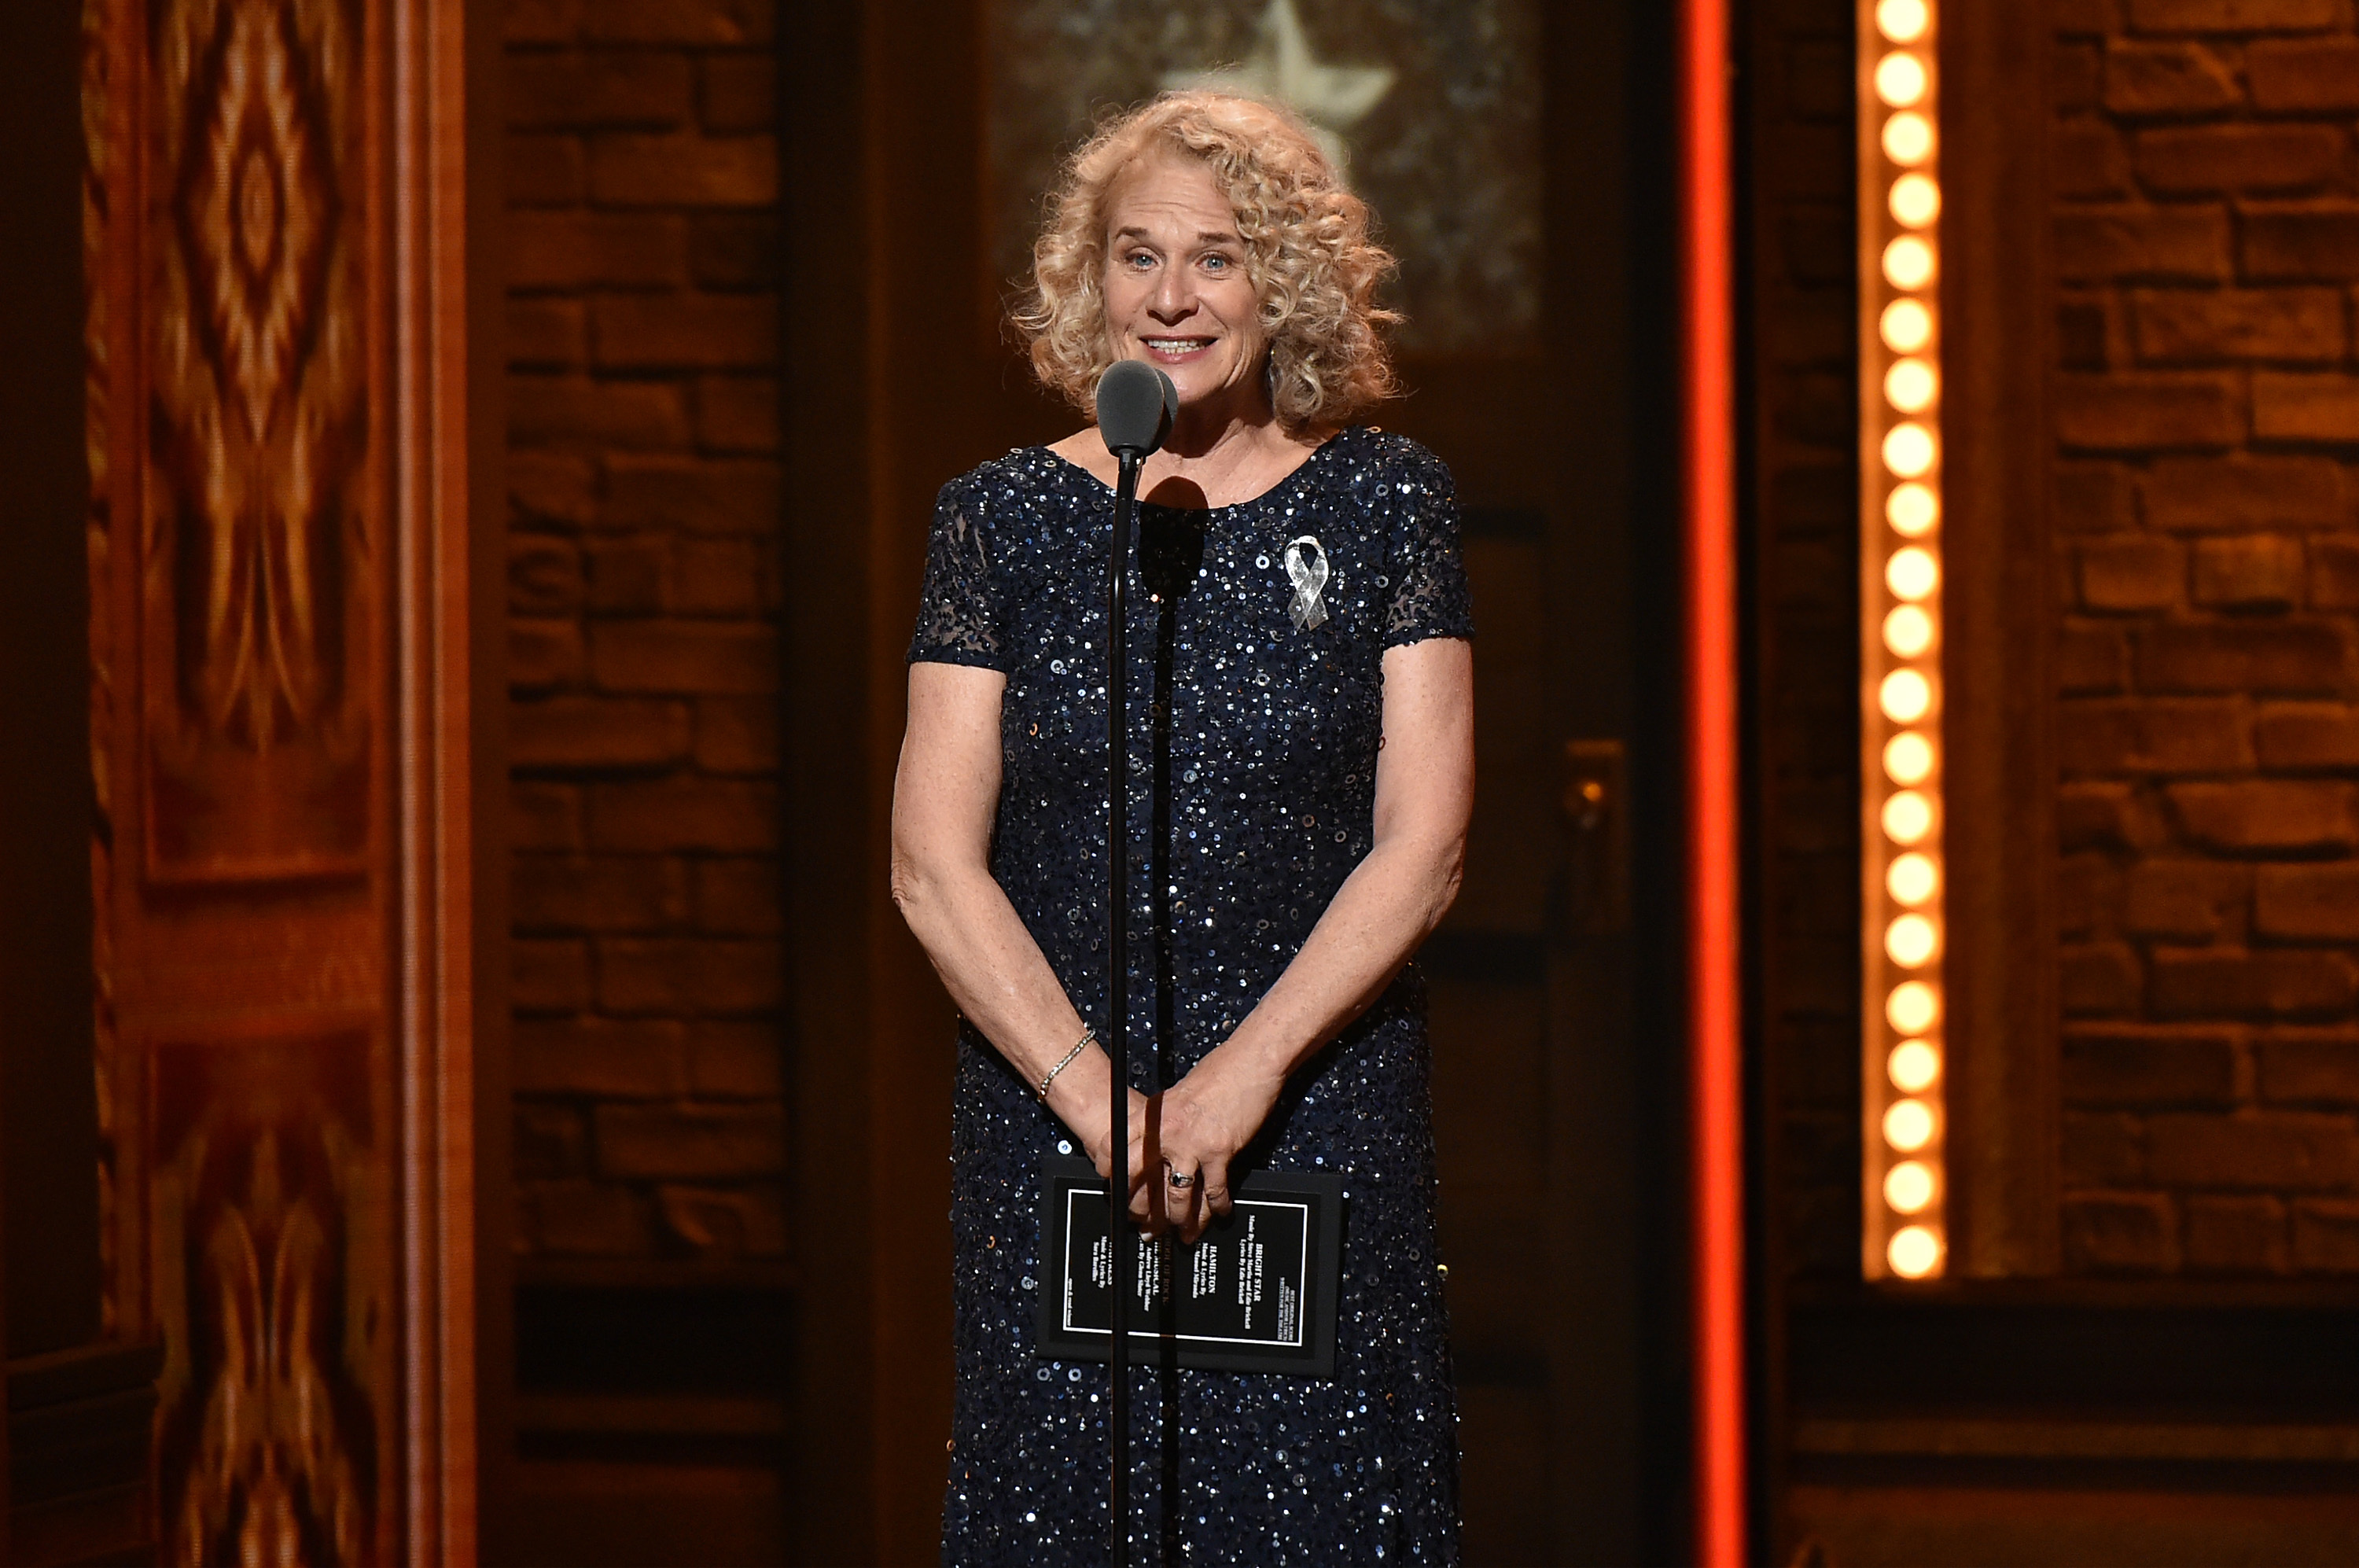 The show will celebrate the music of Carole King as well as James Taylor.